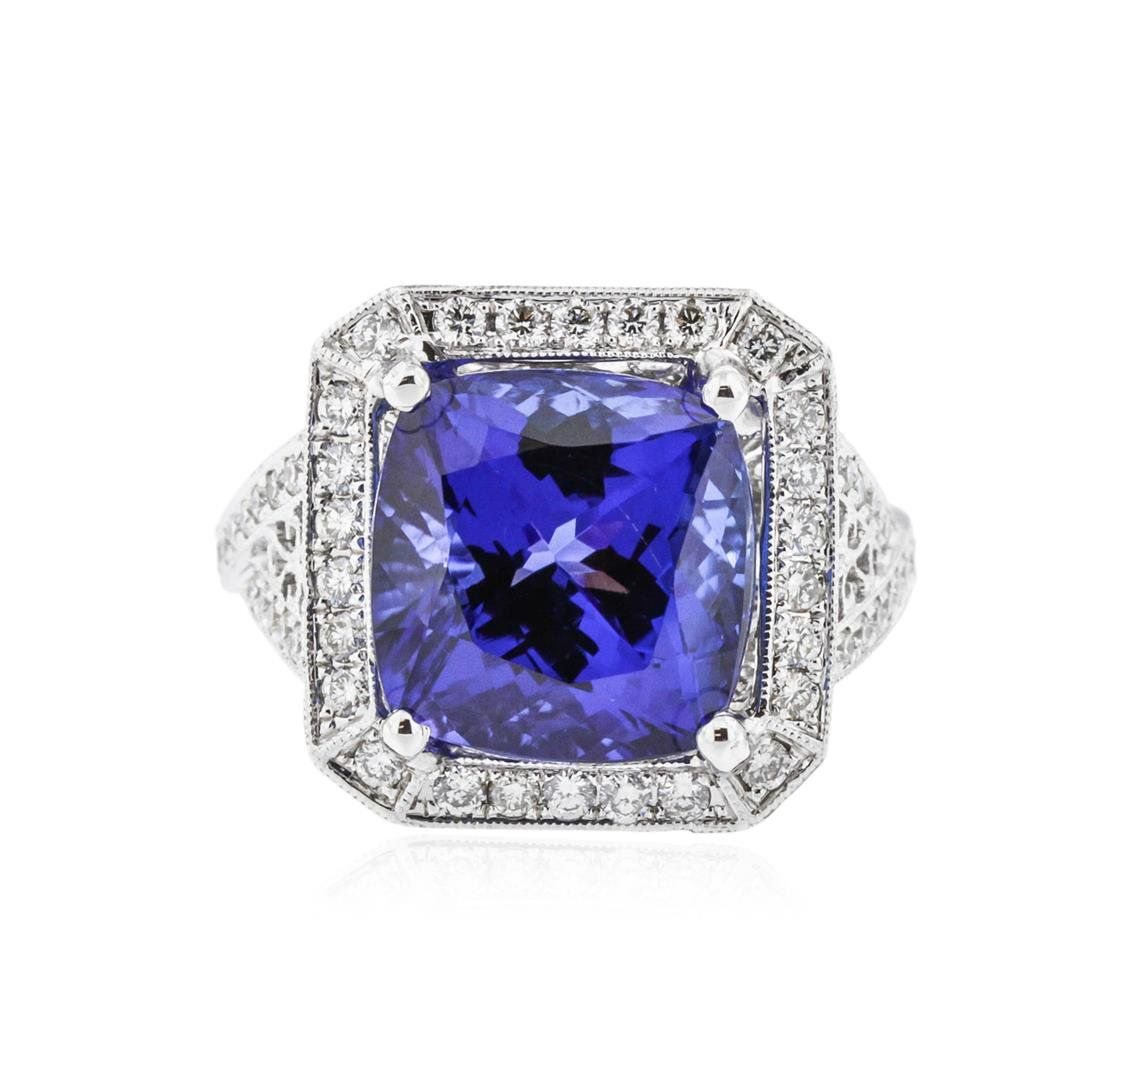 carat world best tanzanite jewelry diamond gia s image yellow cut radiant fancy ring